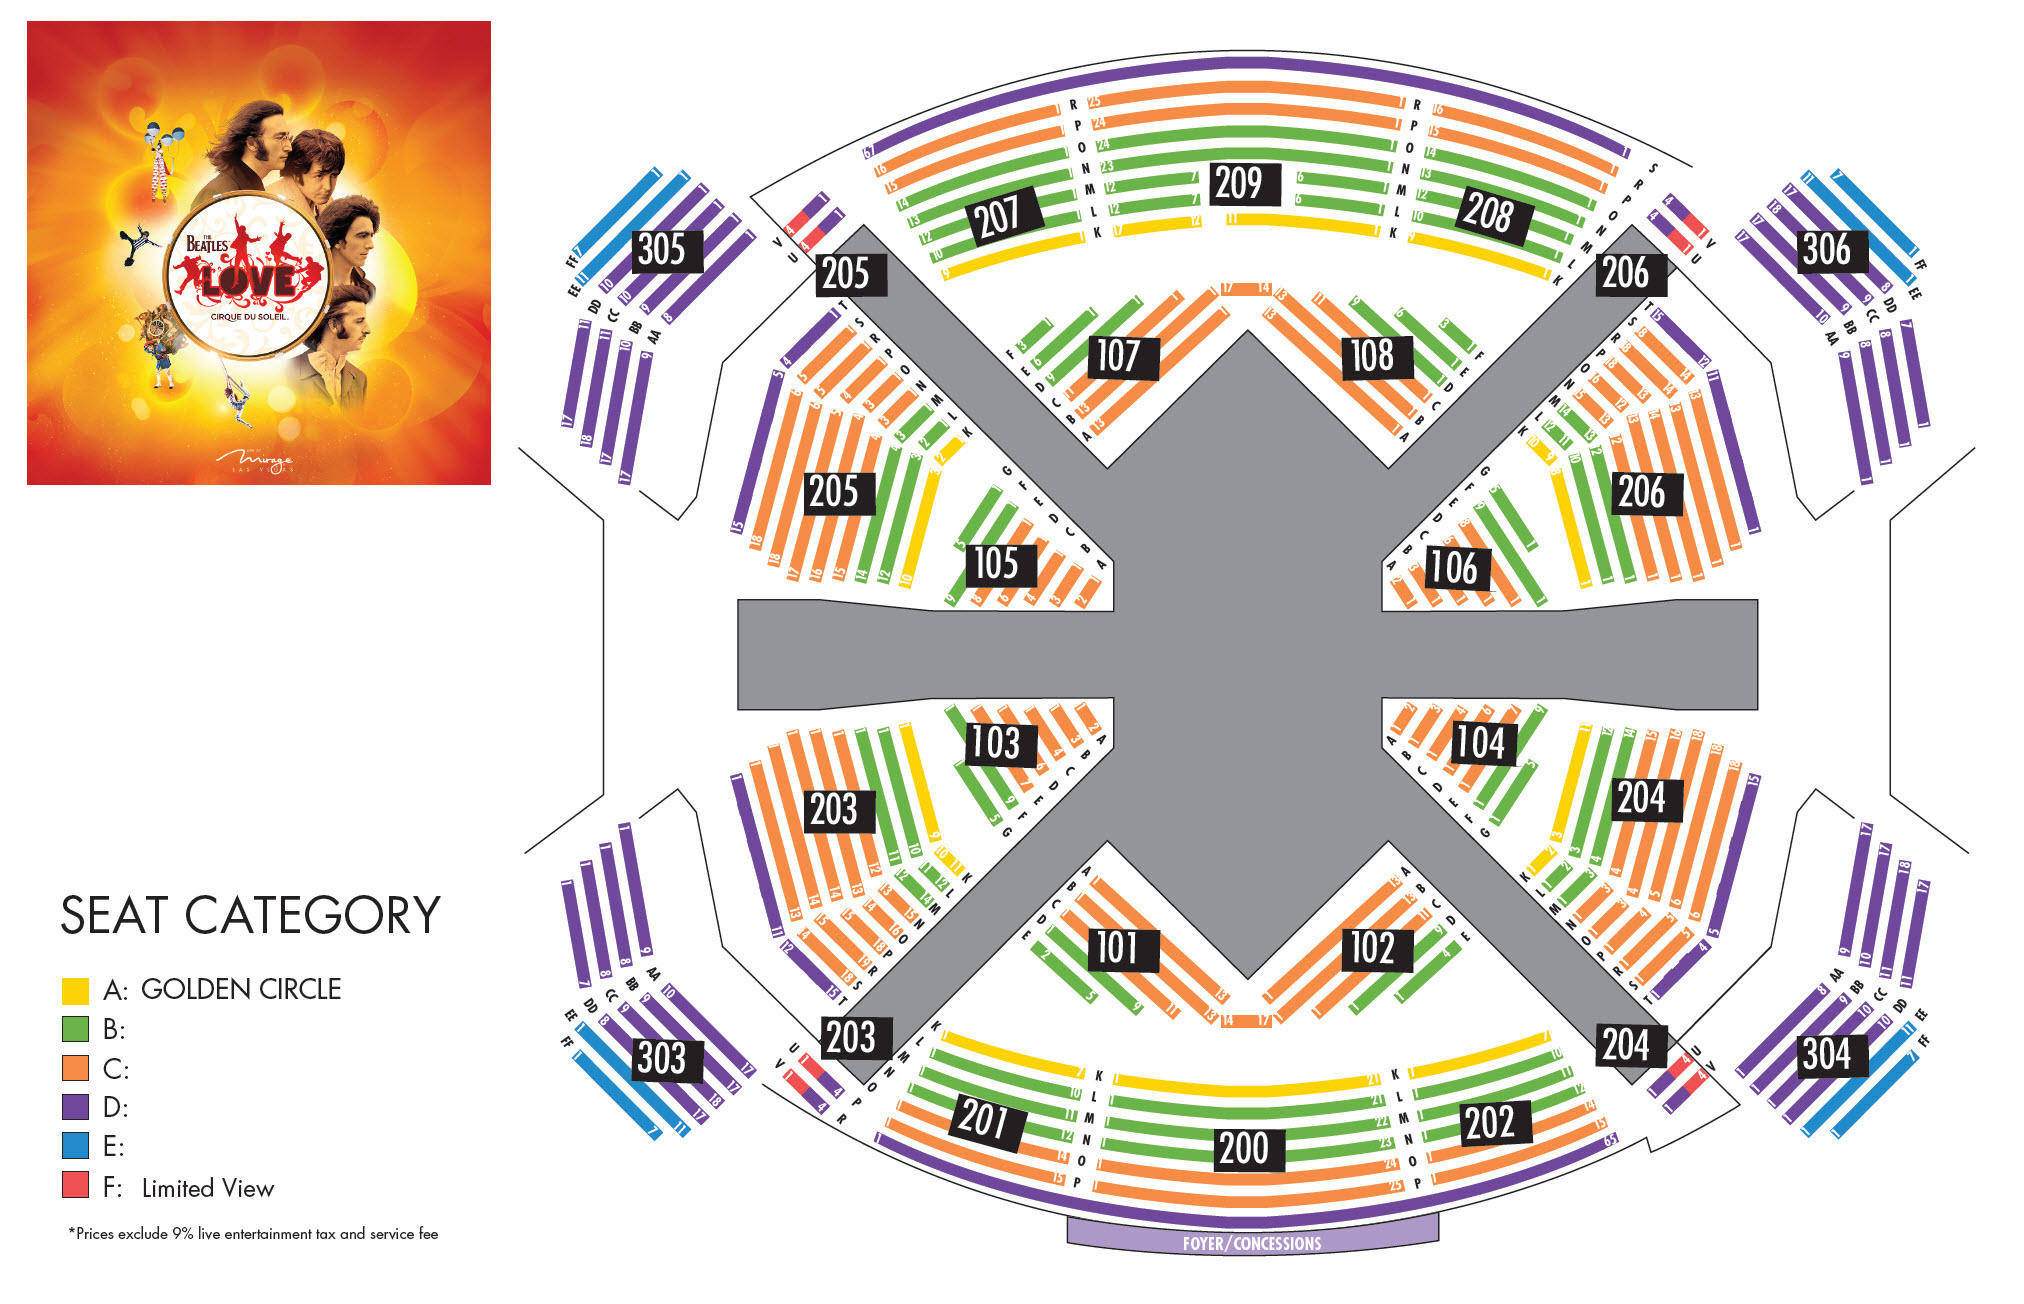 Map of The Beatles™ LOVE™ by Cirque du Soleil® at the Mirage Hotel and Casino